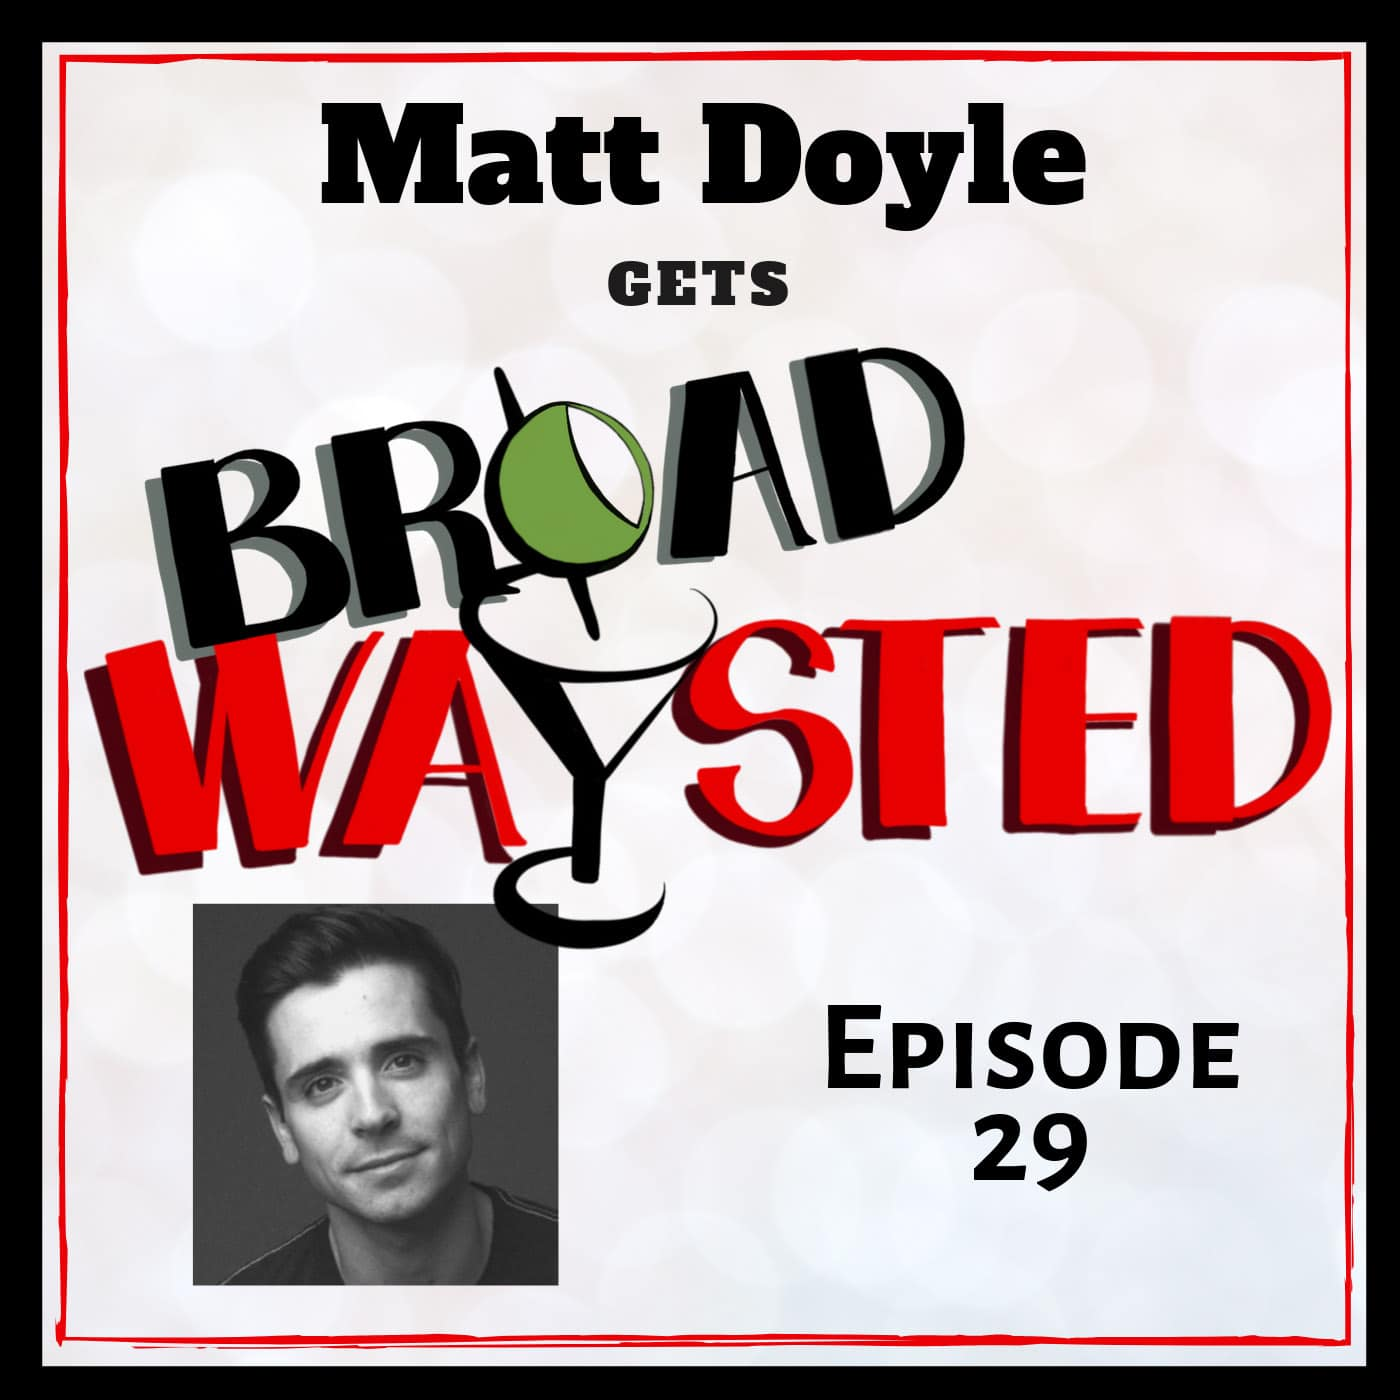 Broadwaysted Ep 29 Matt Doyle